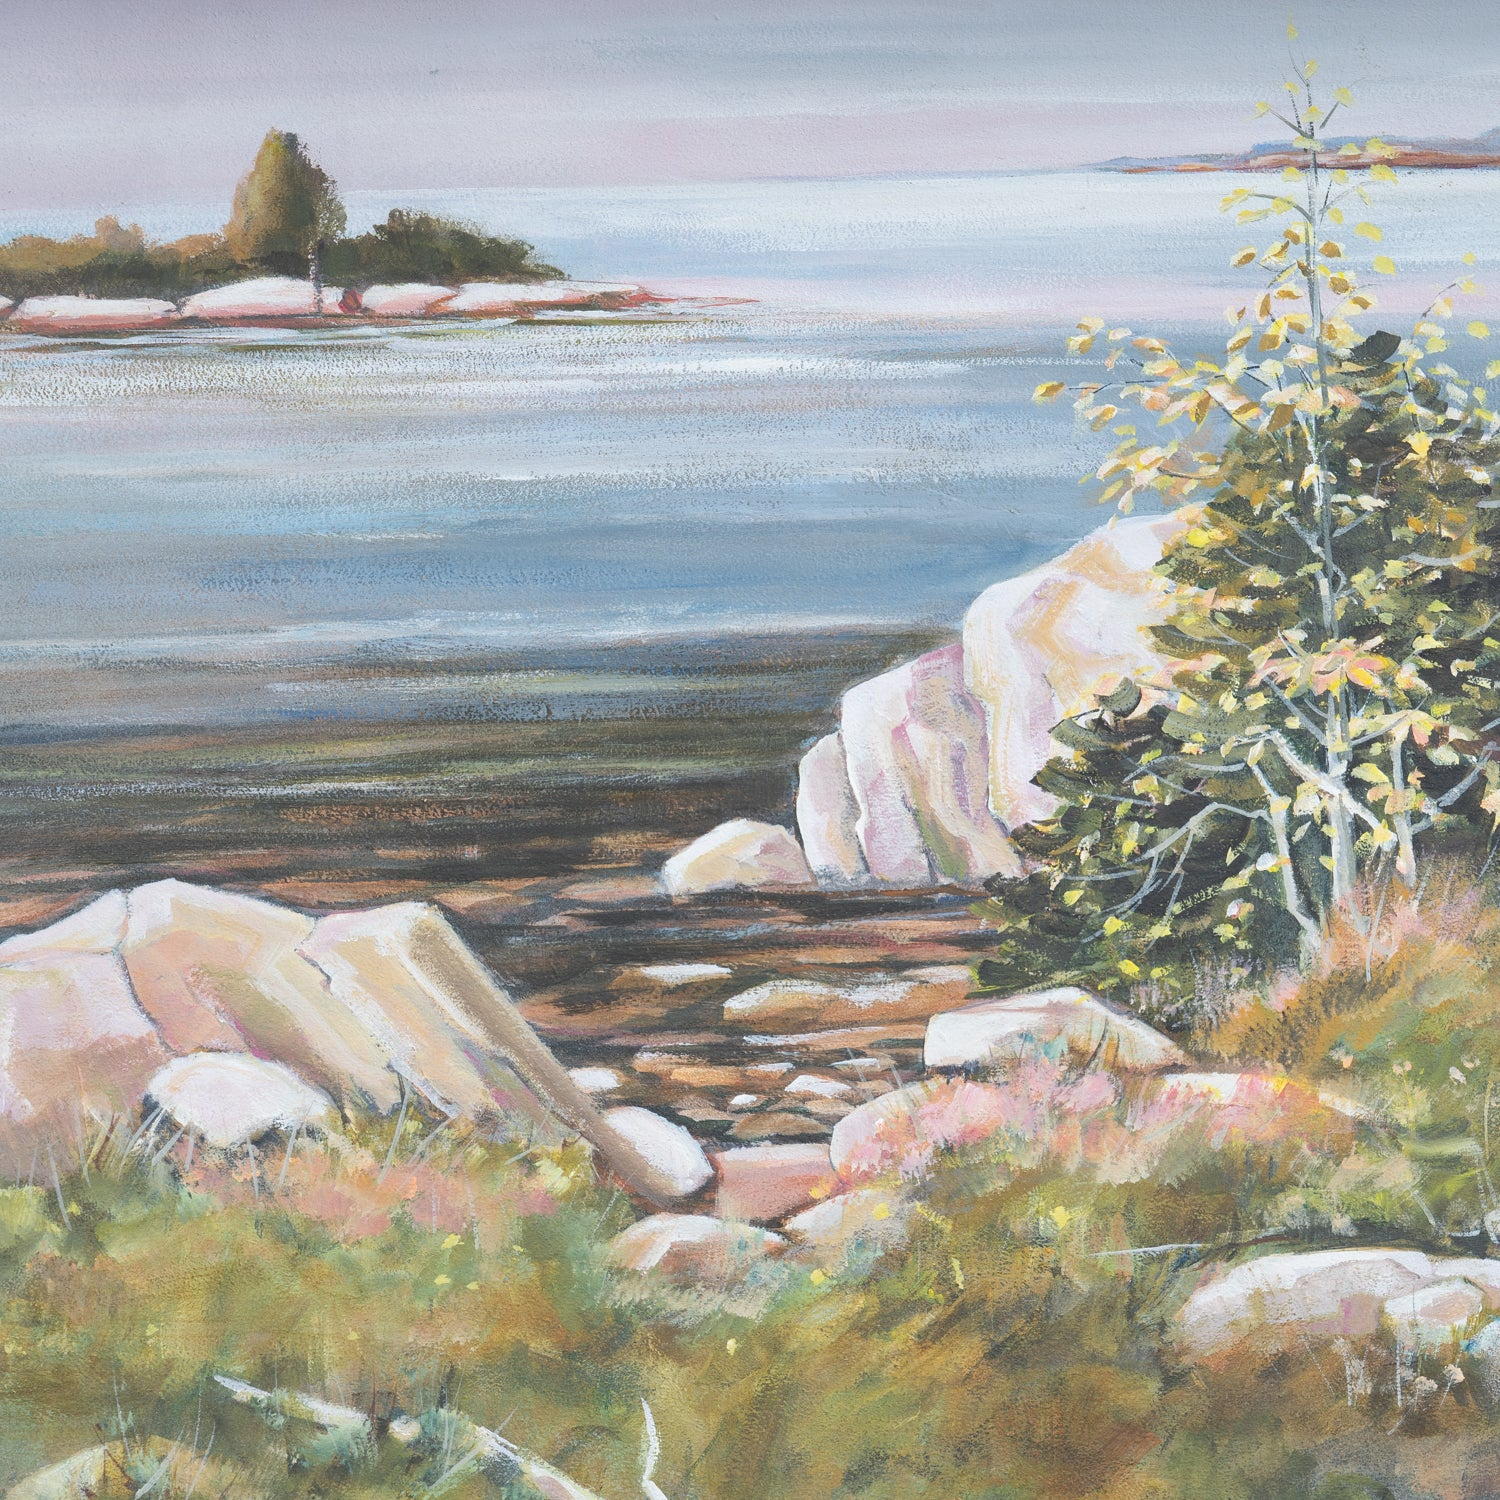 066 - 'Shallow Shoreline' Painting on Board by Durie